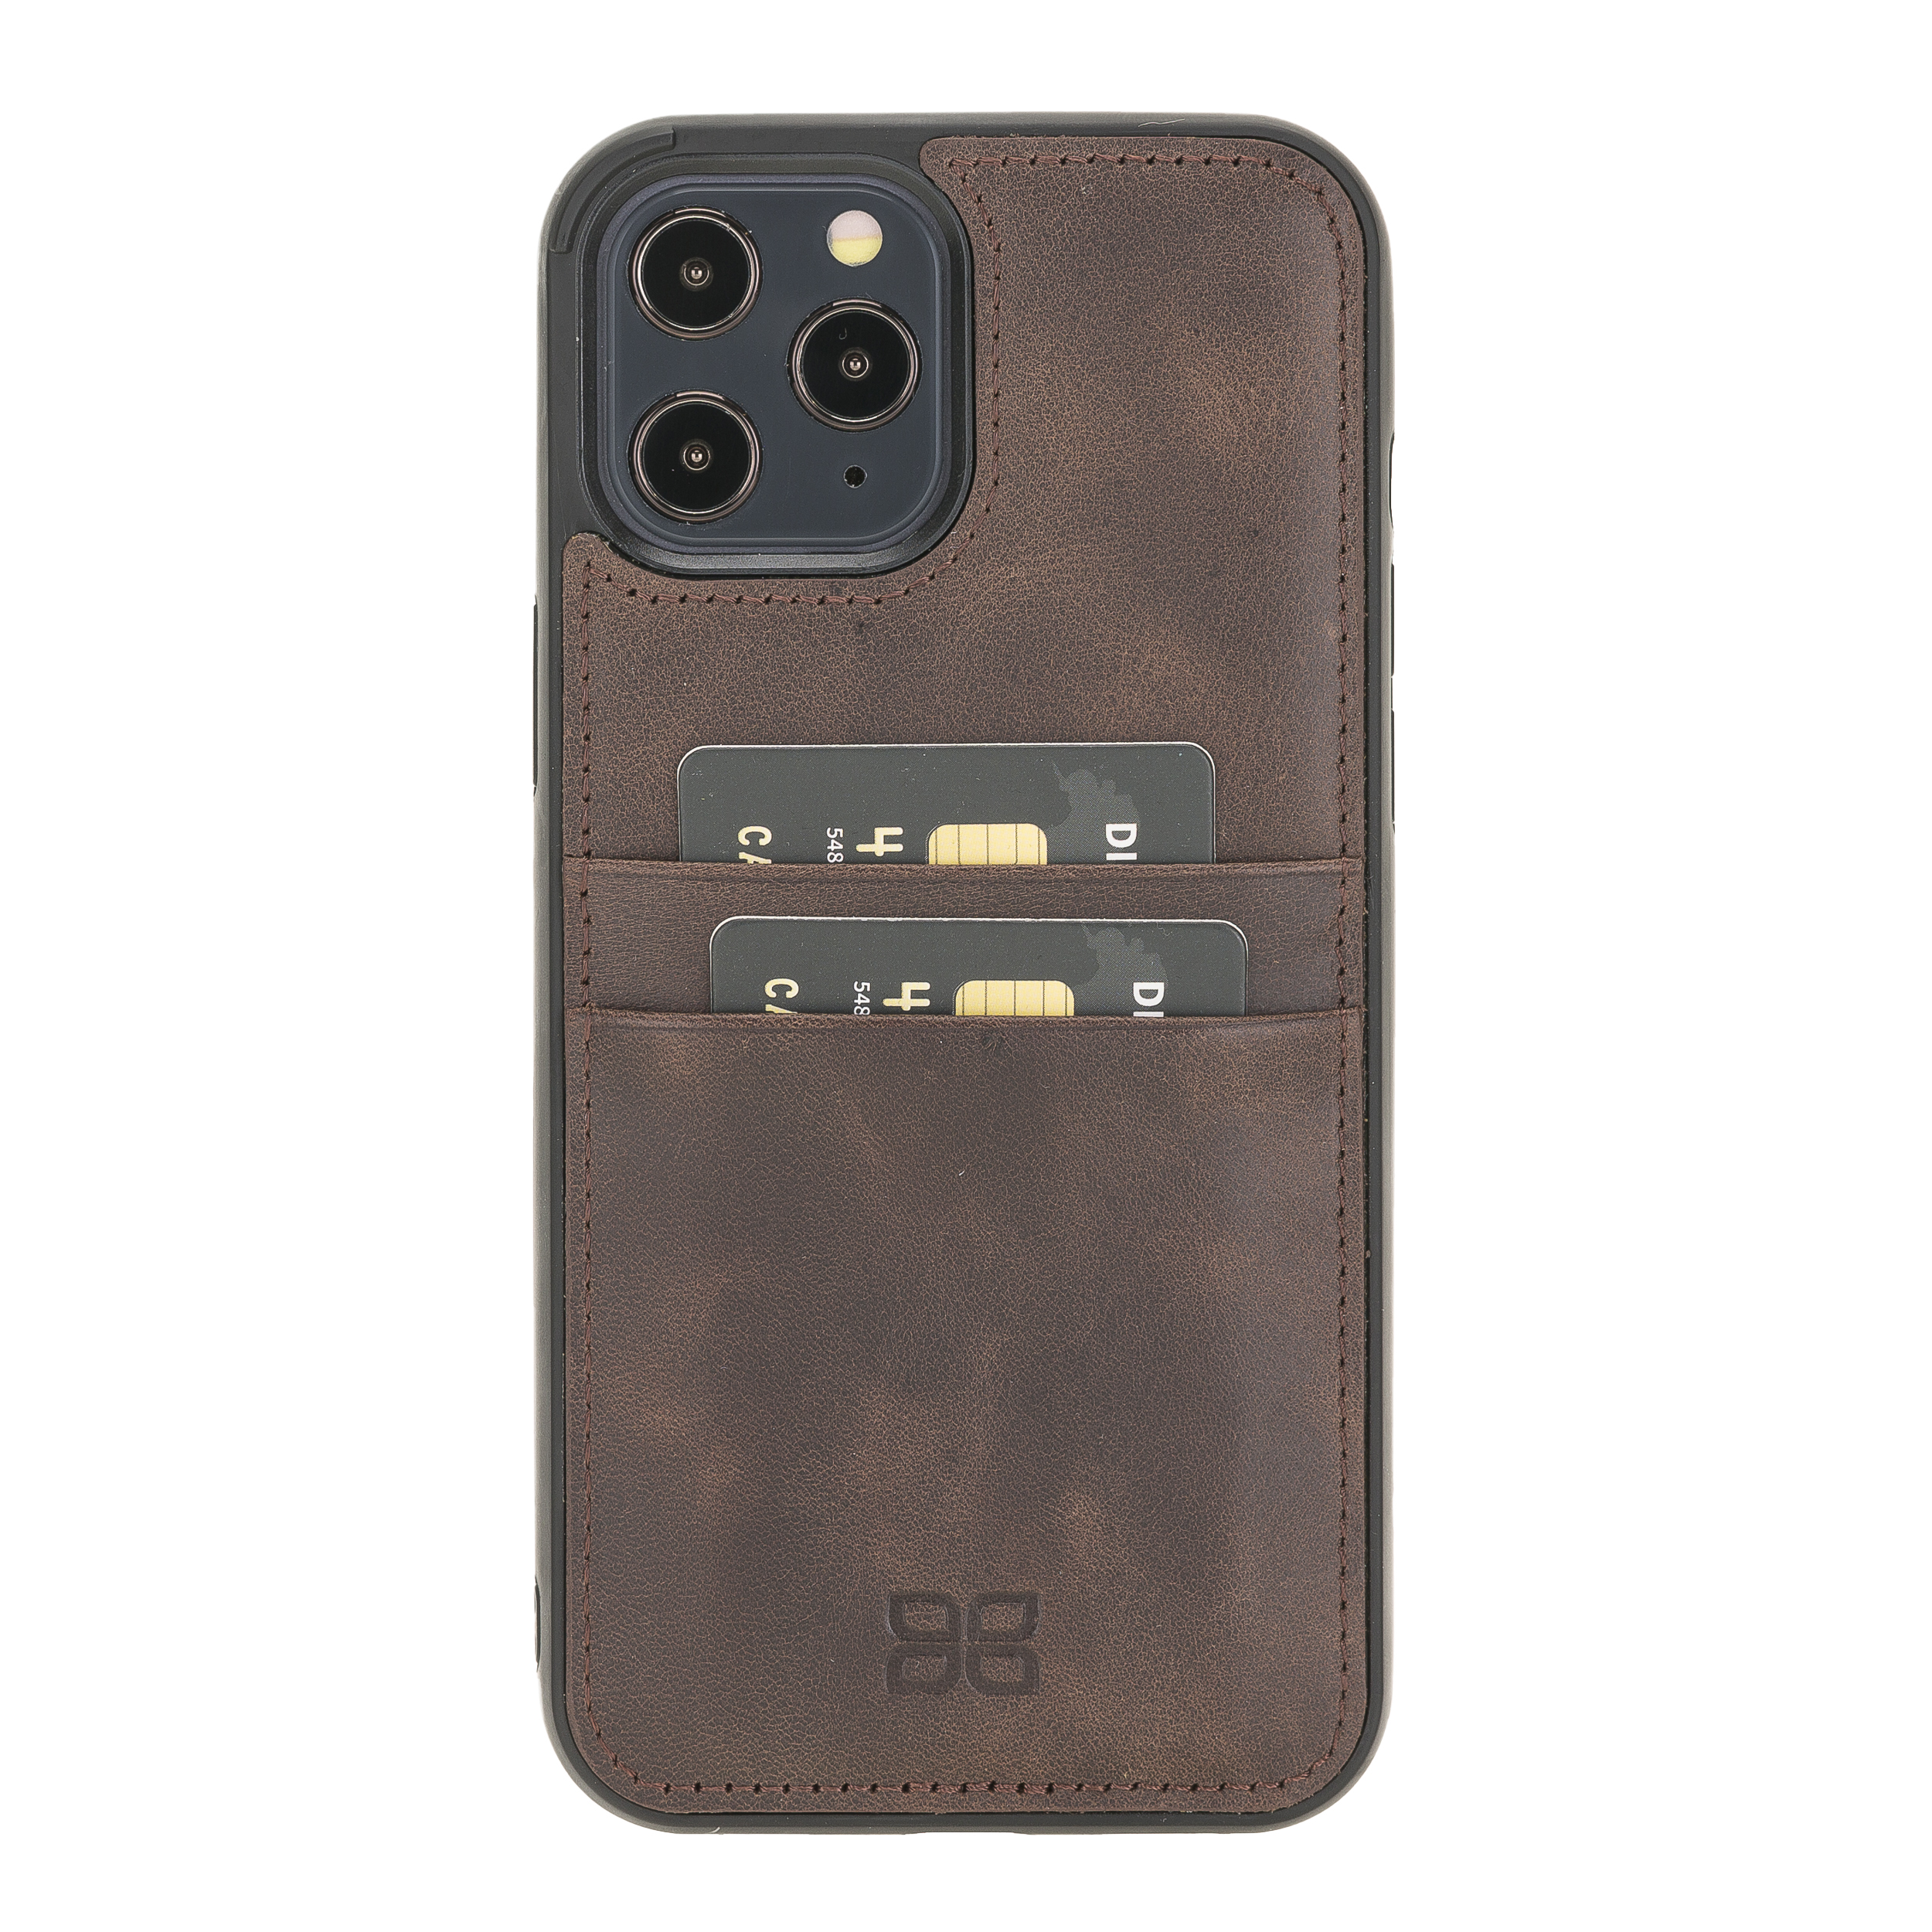 2020 New Edition Genuine Leather Phone Case for iPhone 12 6.7